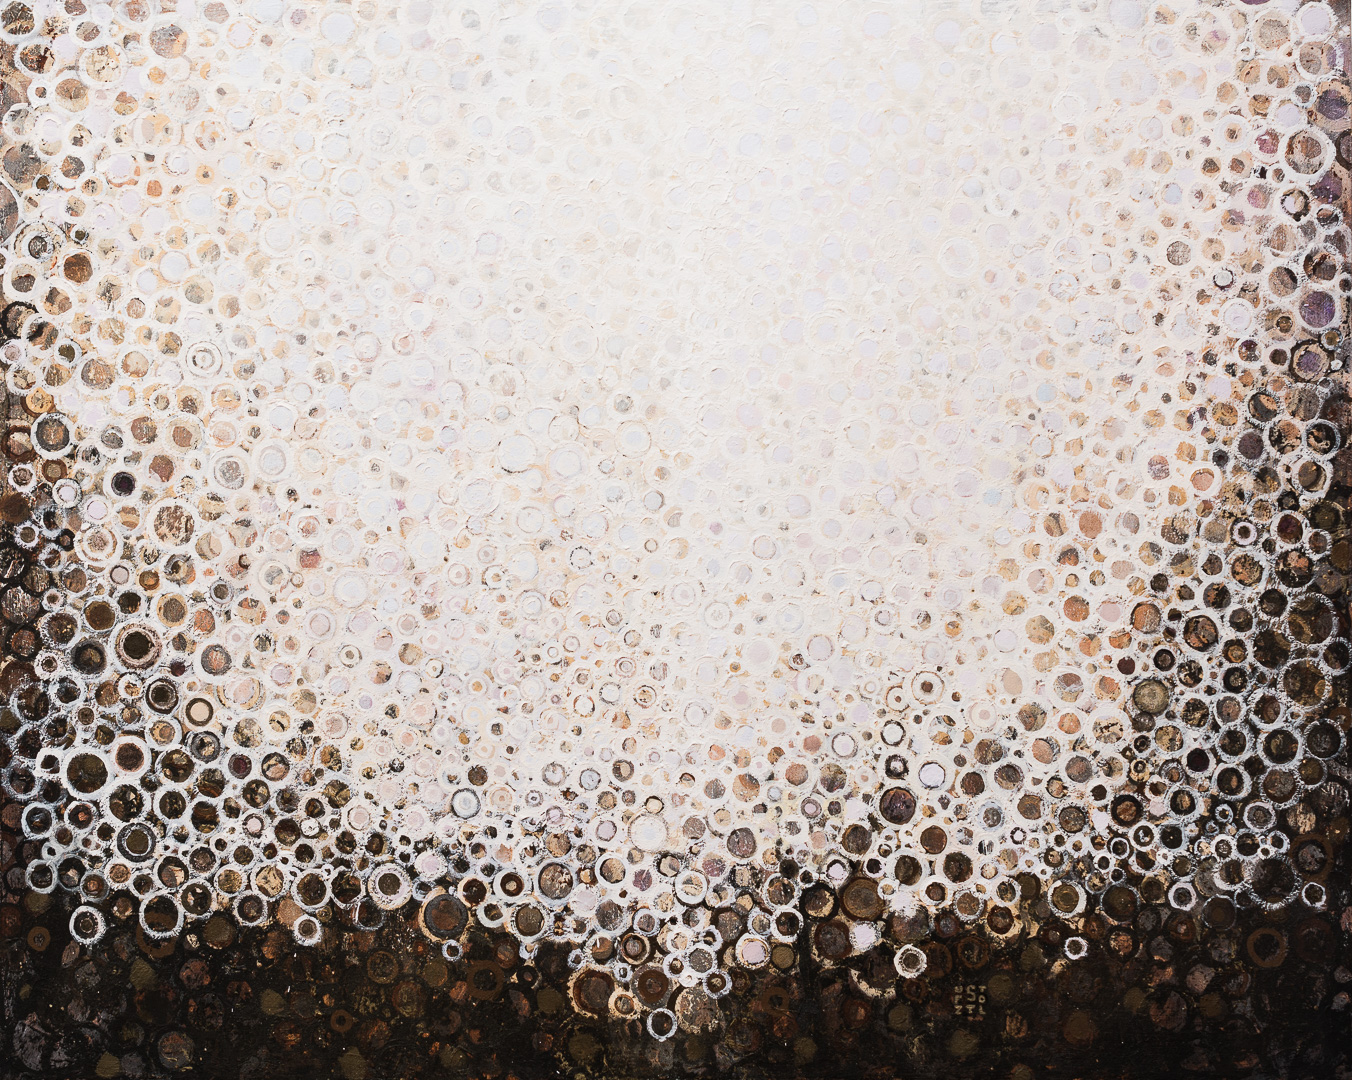 """Ardor"" by Randall Stoltzfus, 2016, Acrylic dispersion on polymer canvas, 32 by 40 inches"